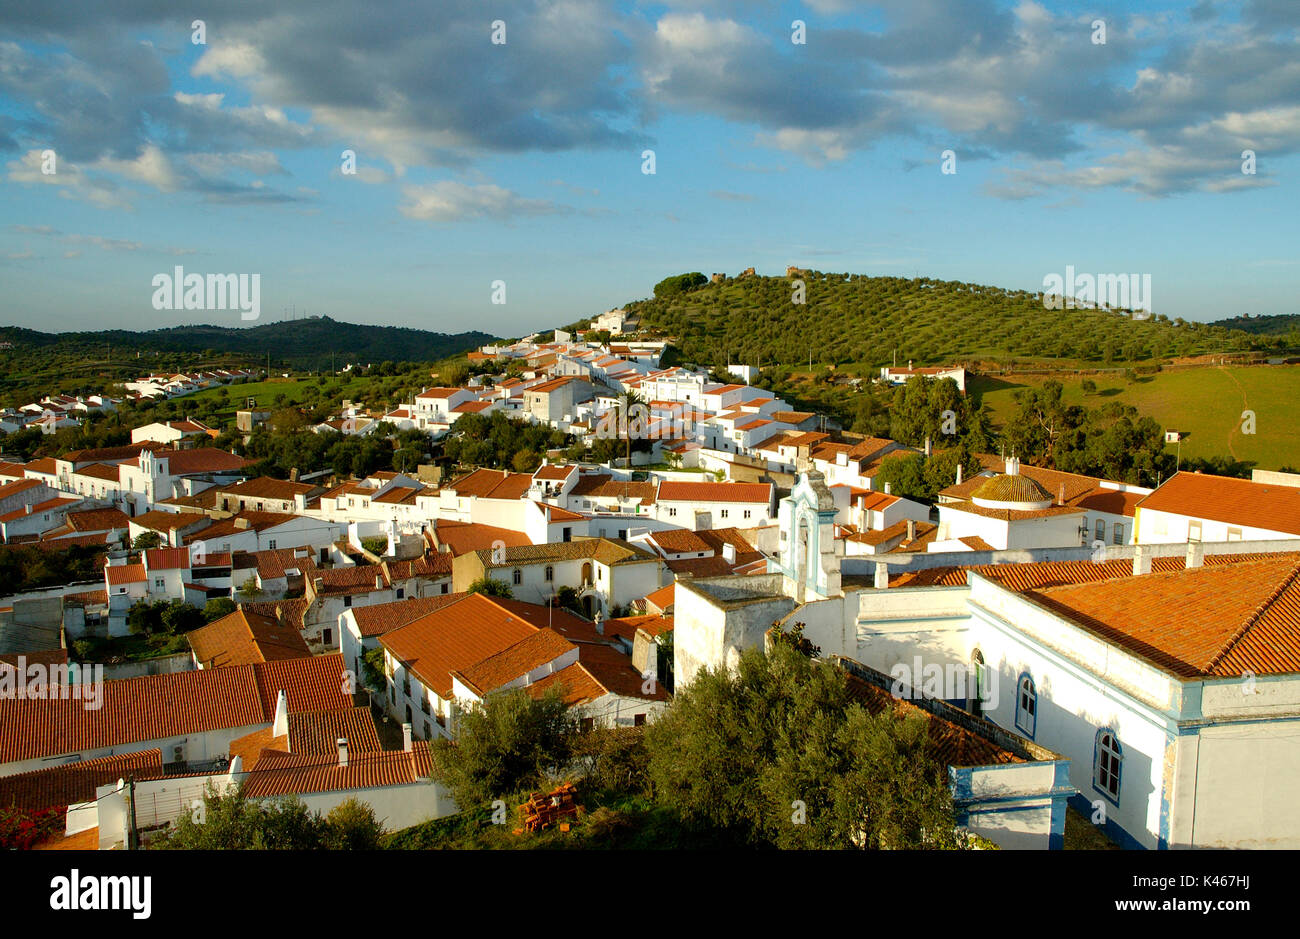 The traditional village of Portel with white houses, Alentejo, Portugal - Stock Image